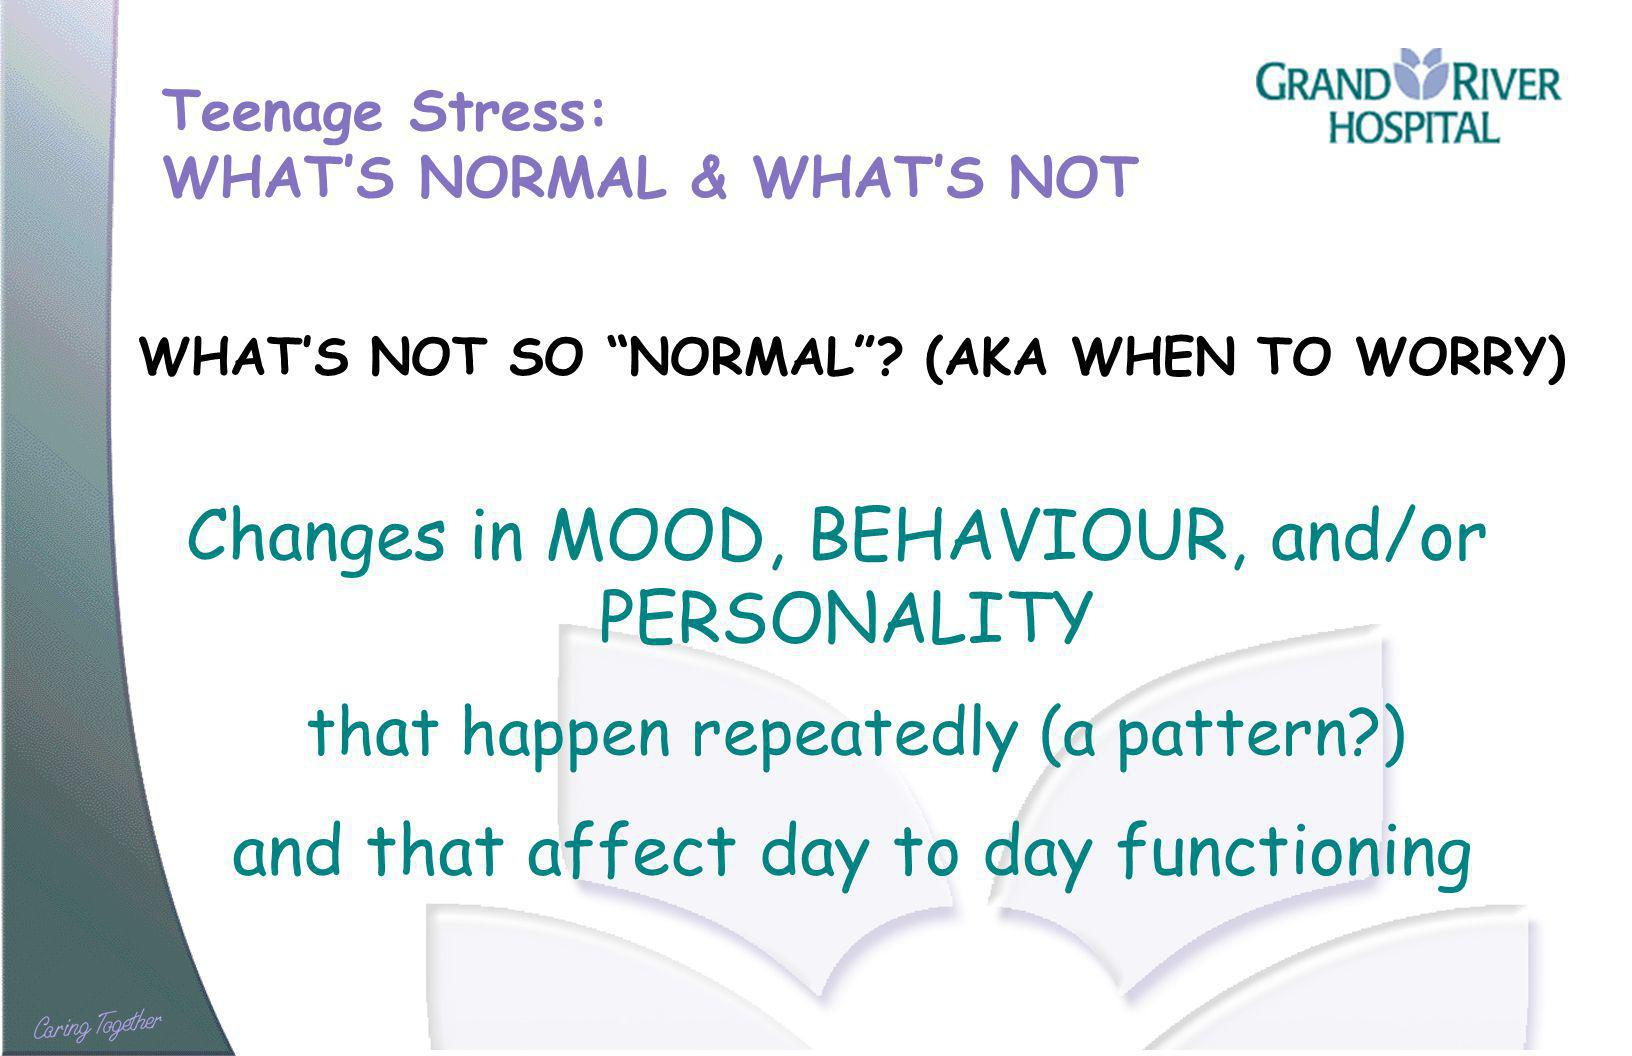 Teenage Stress: WHATS NORMAL & WHATS NOT WHATS NOT SO NORMAL.